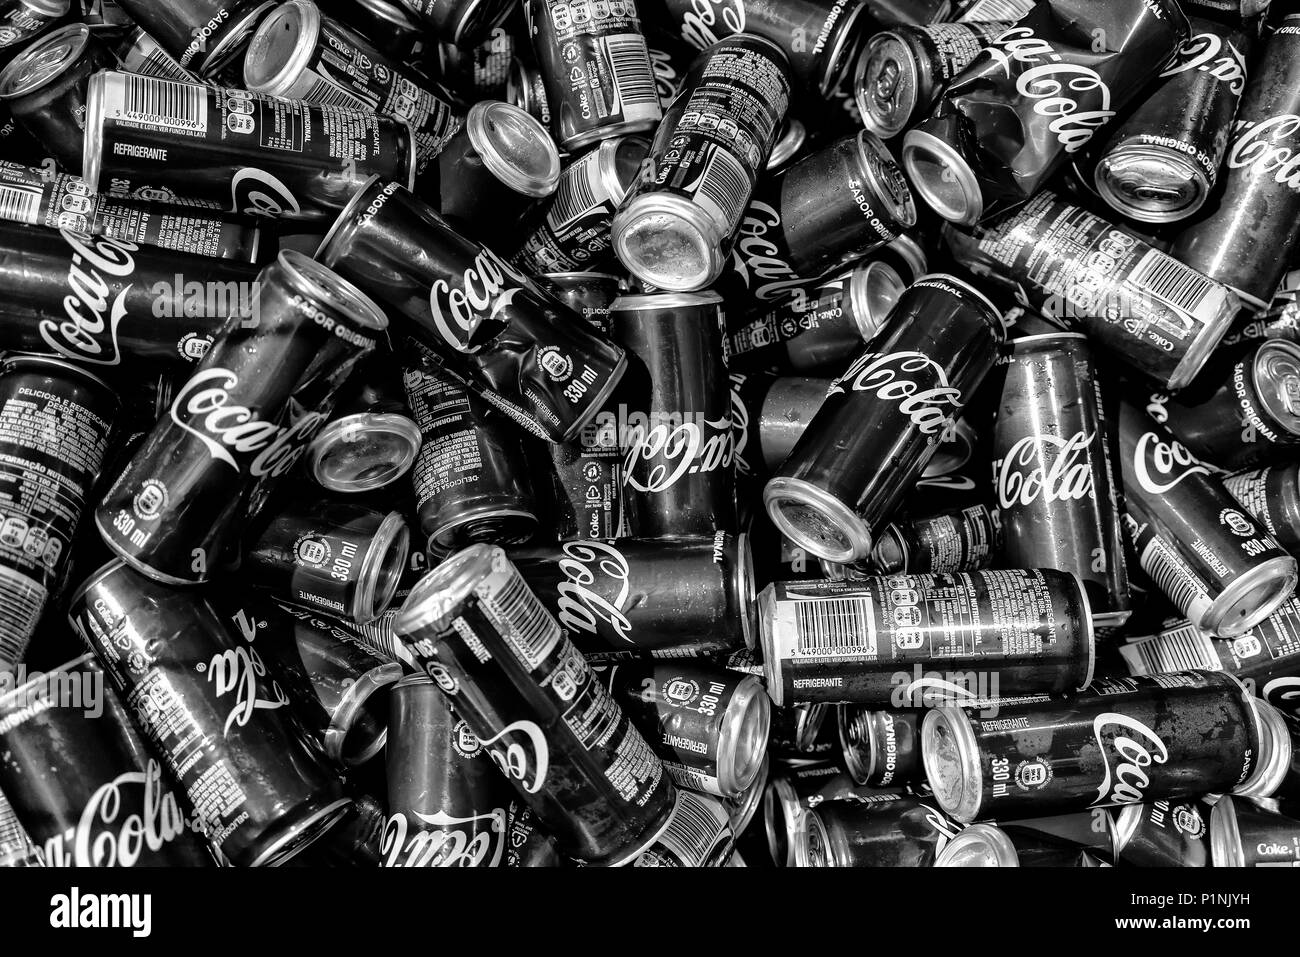 LUANDA/ANGOLA 23 MAY 2018 - Coke ready for recycling cans bw version - Stock Image